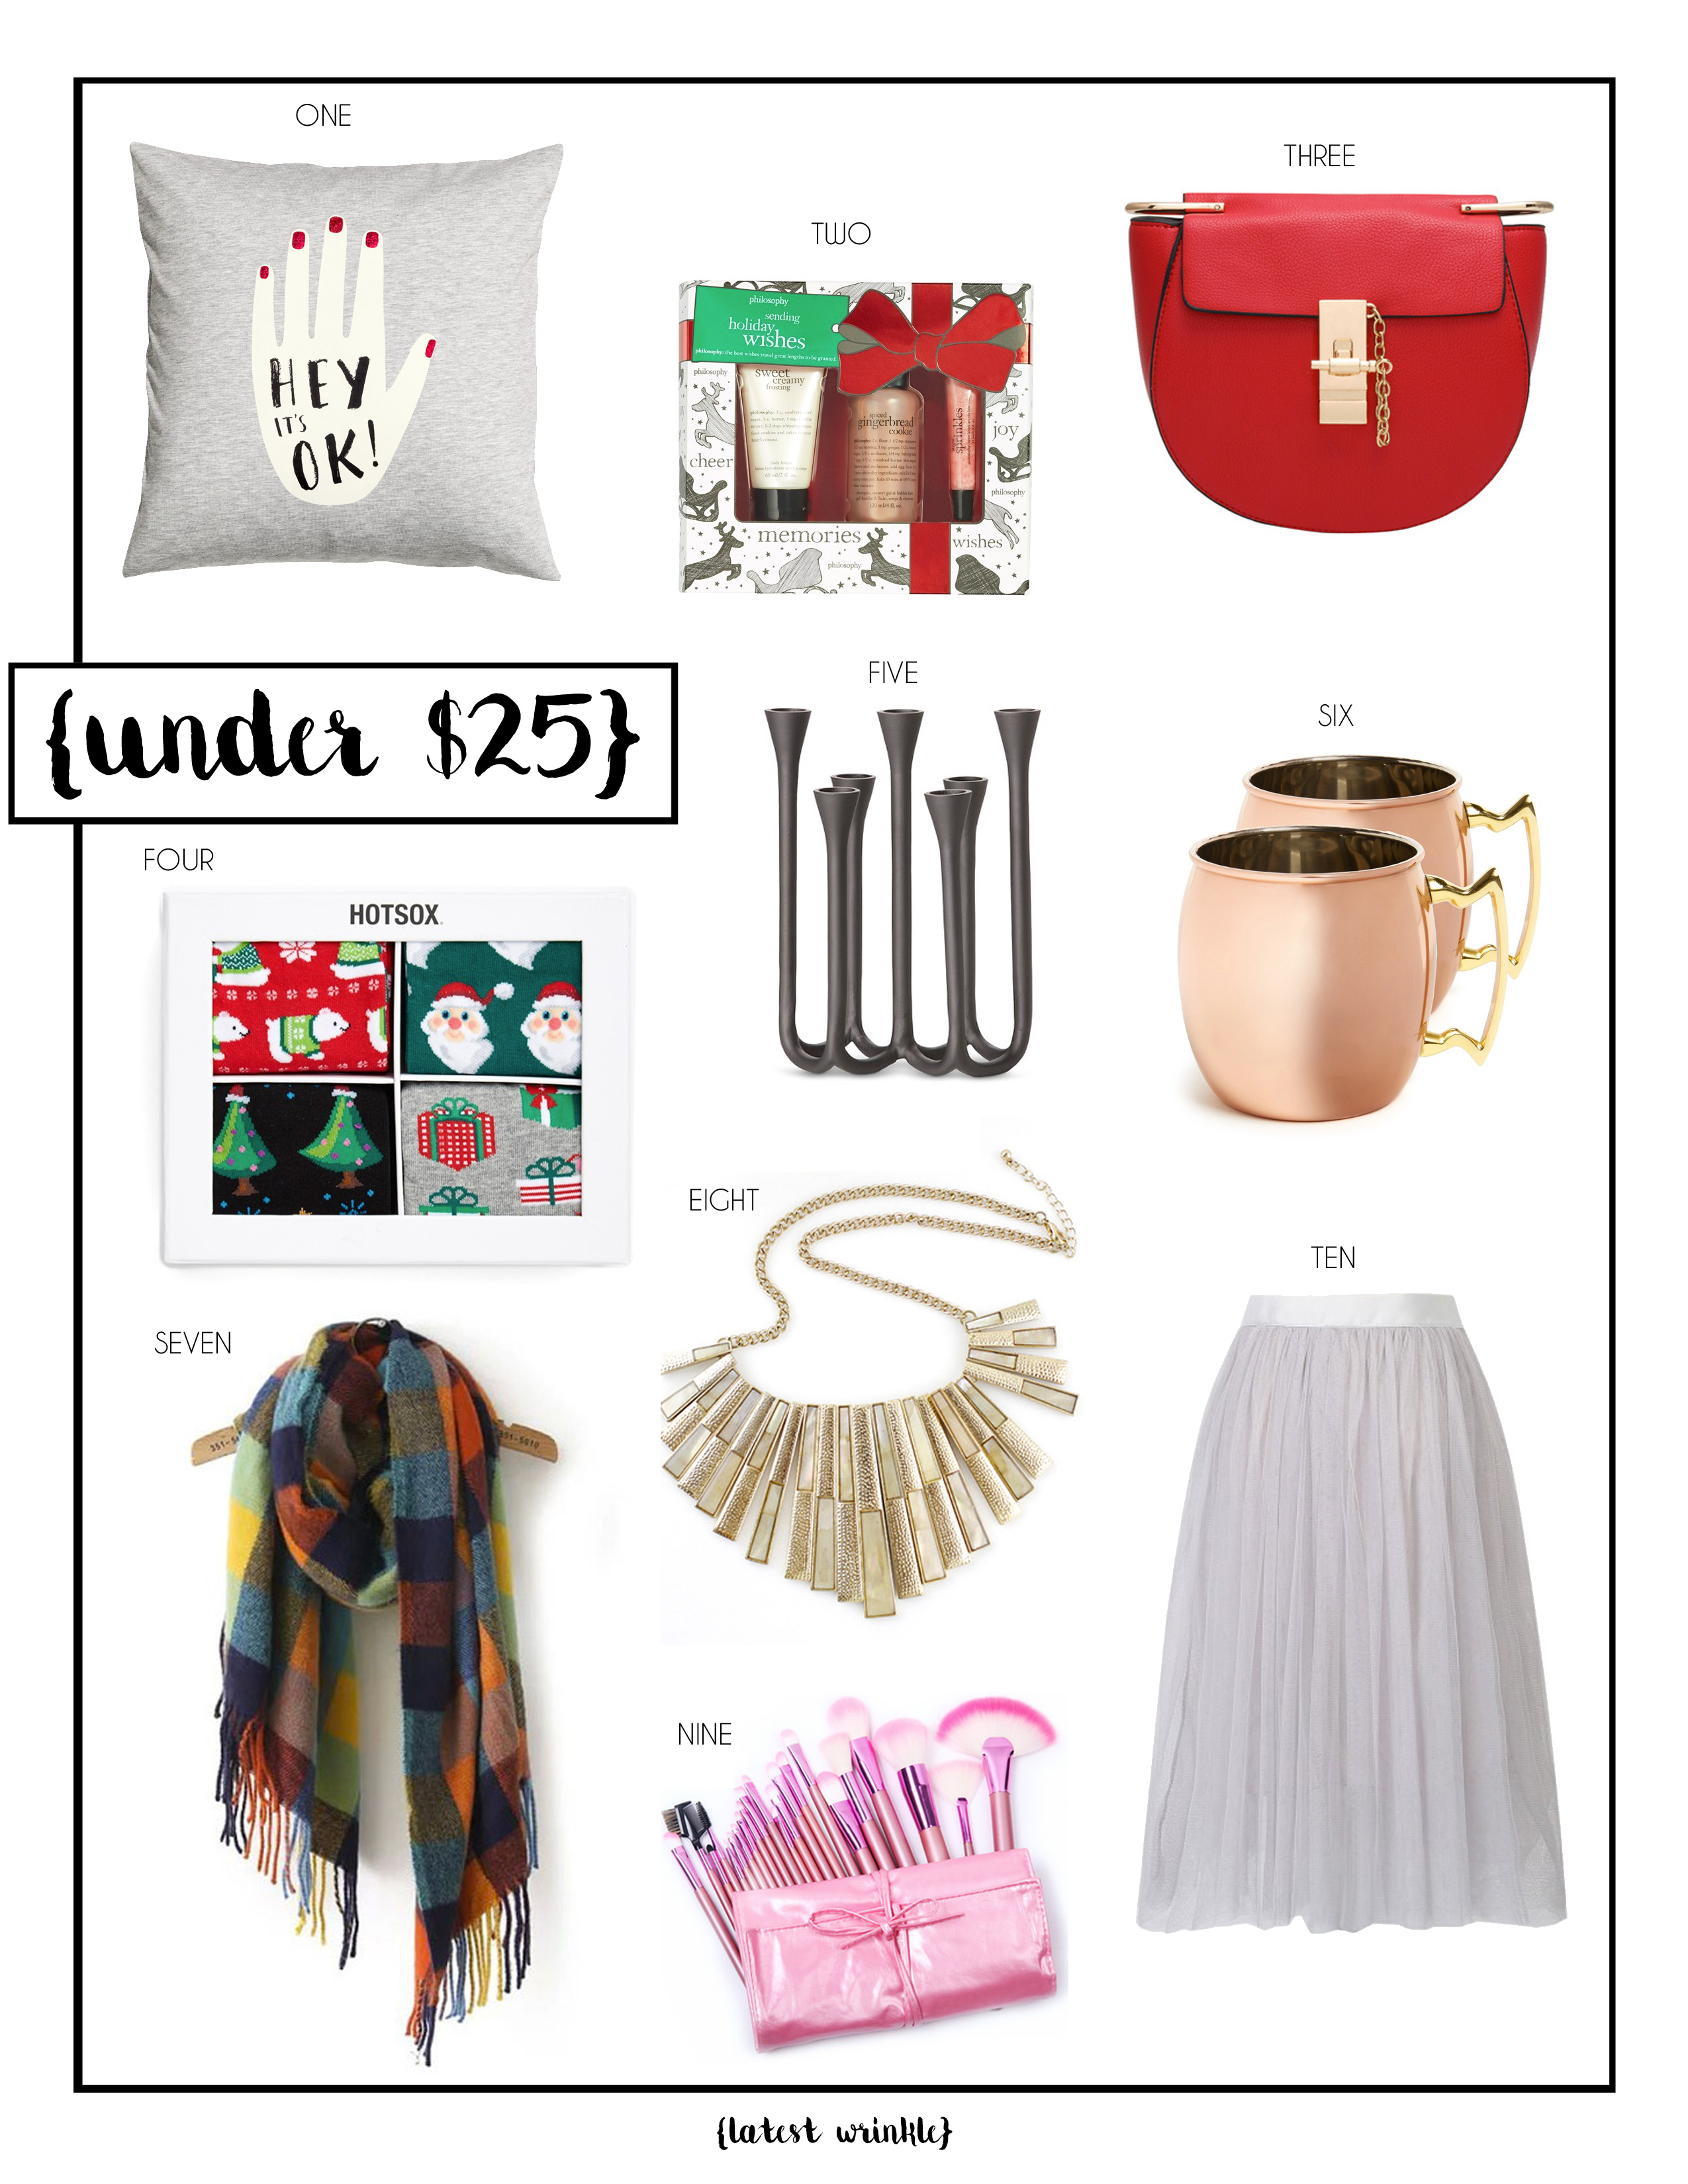 GIFT GUIDE | UNDER $25